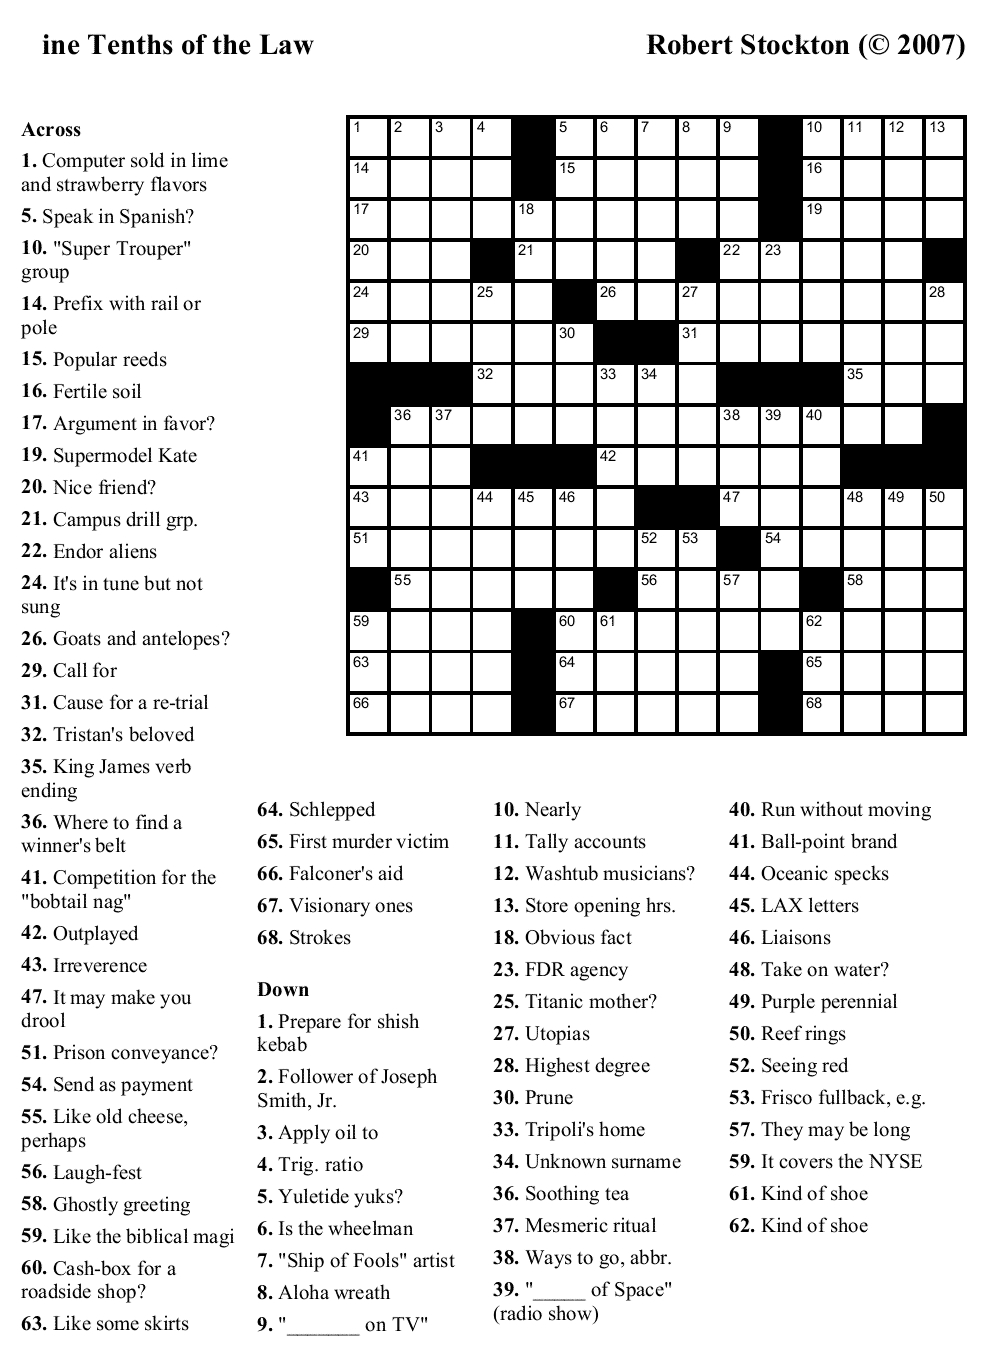 Crossword Puzzles Printable - Yahoo Image Search Results | Crossword - Free Printable Crossword Puzzles